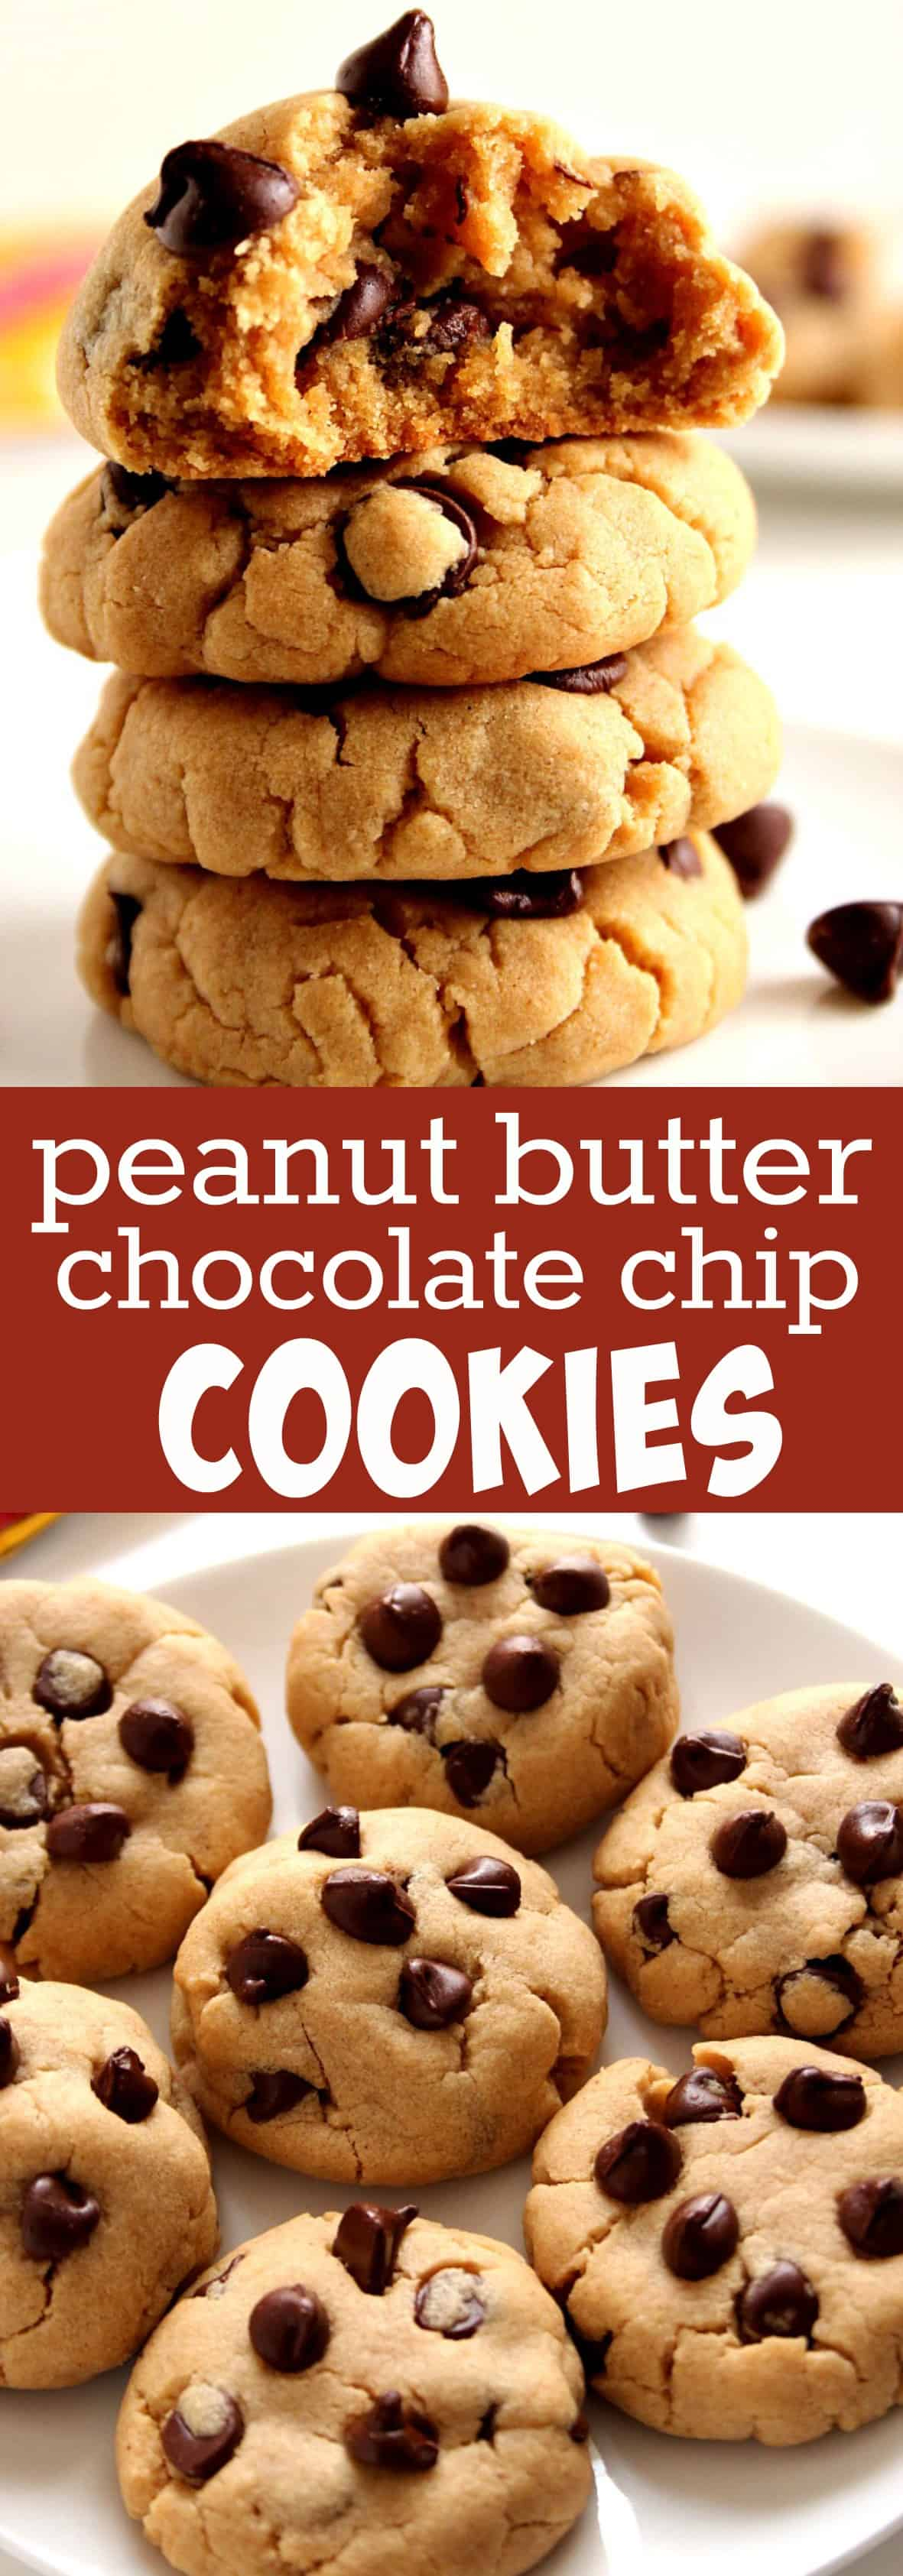 peanut butter chocolate chip cookies long Peanut Butter Chocolate Chip ...